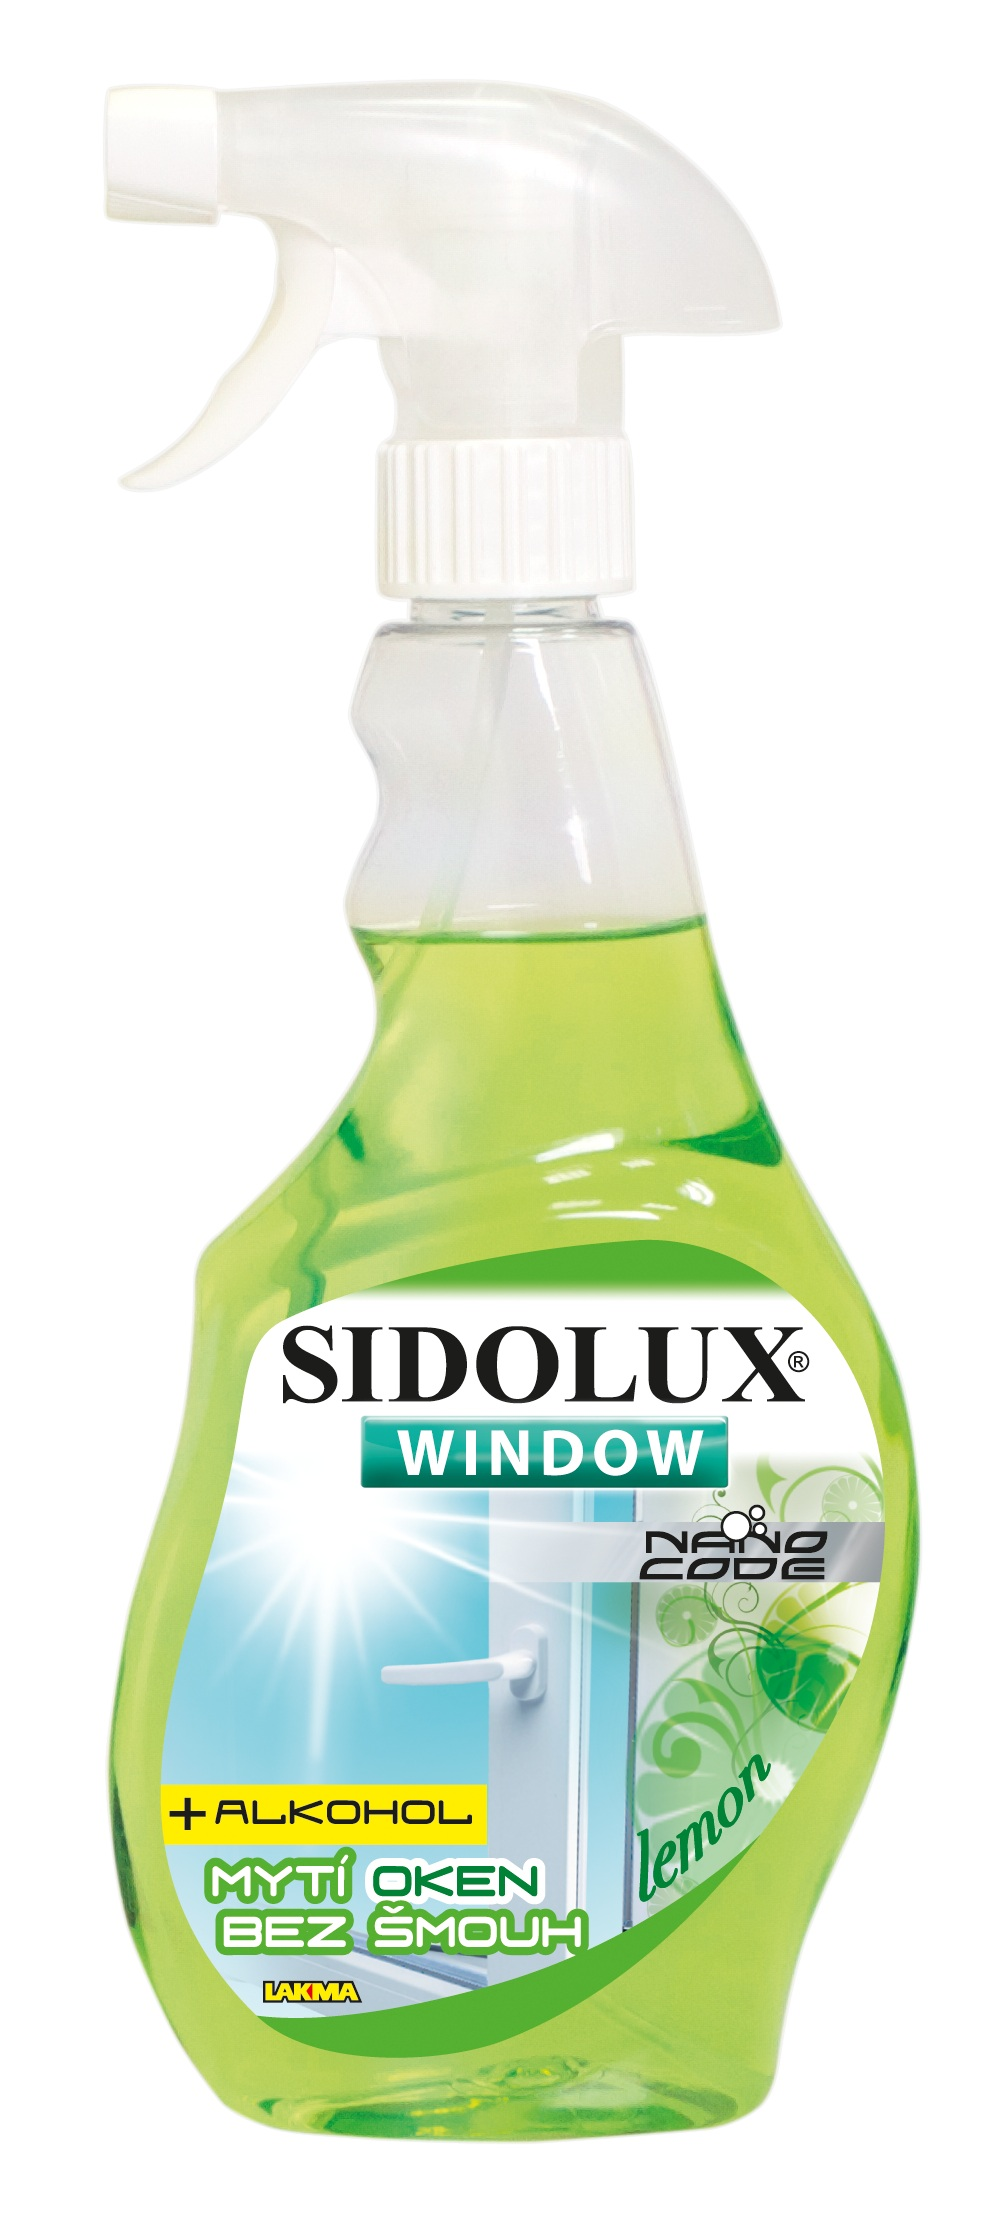 SIDOLUX WINDOW NANO CODE s vůní CITRONU 750ml